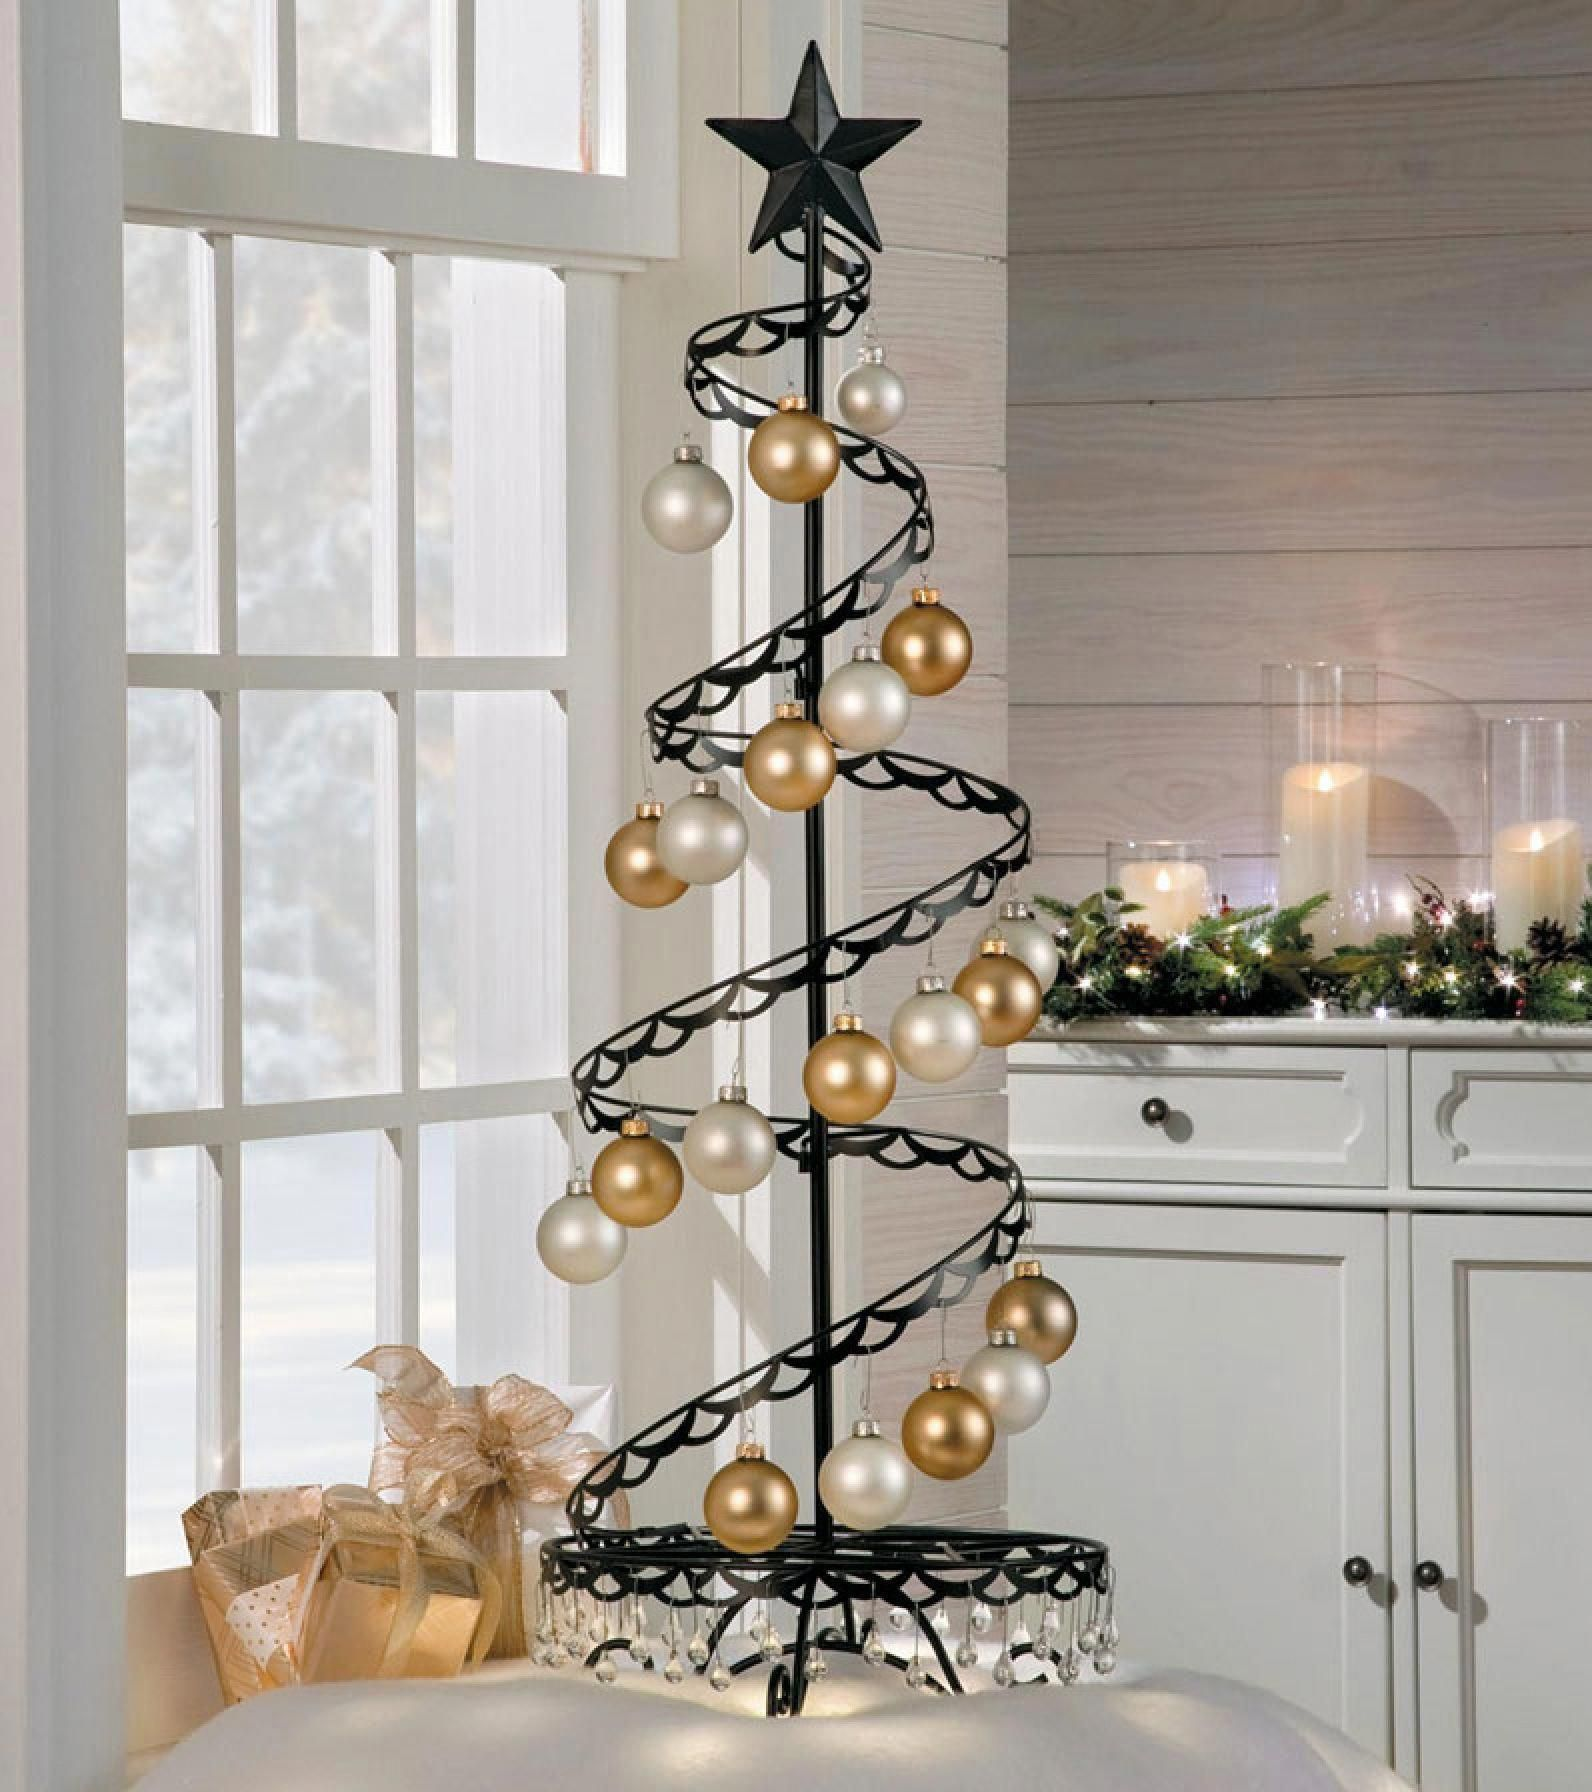 Exceptional Metal Tree Wall Art Hobby Lobby Detail Is Available On Our Internet Site Check It O Ornament Tree Display Spiral Christmas Tree Ornament Display